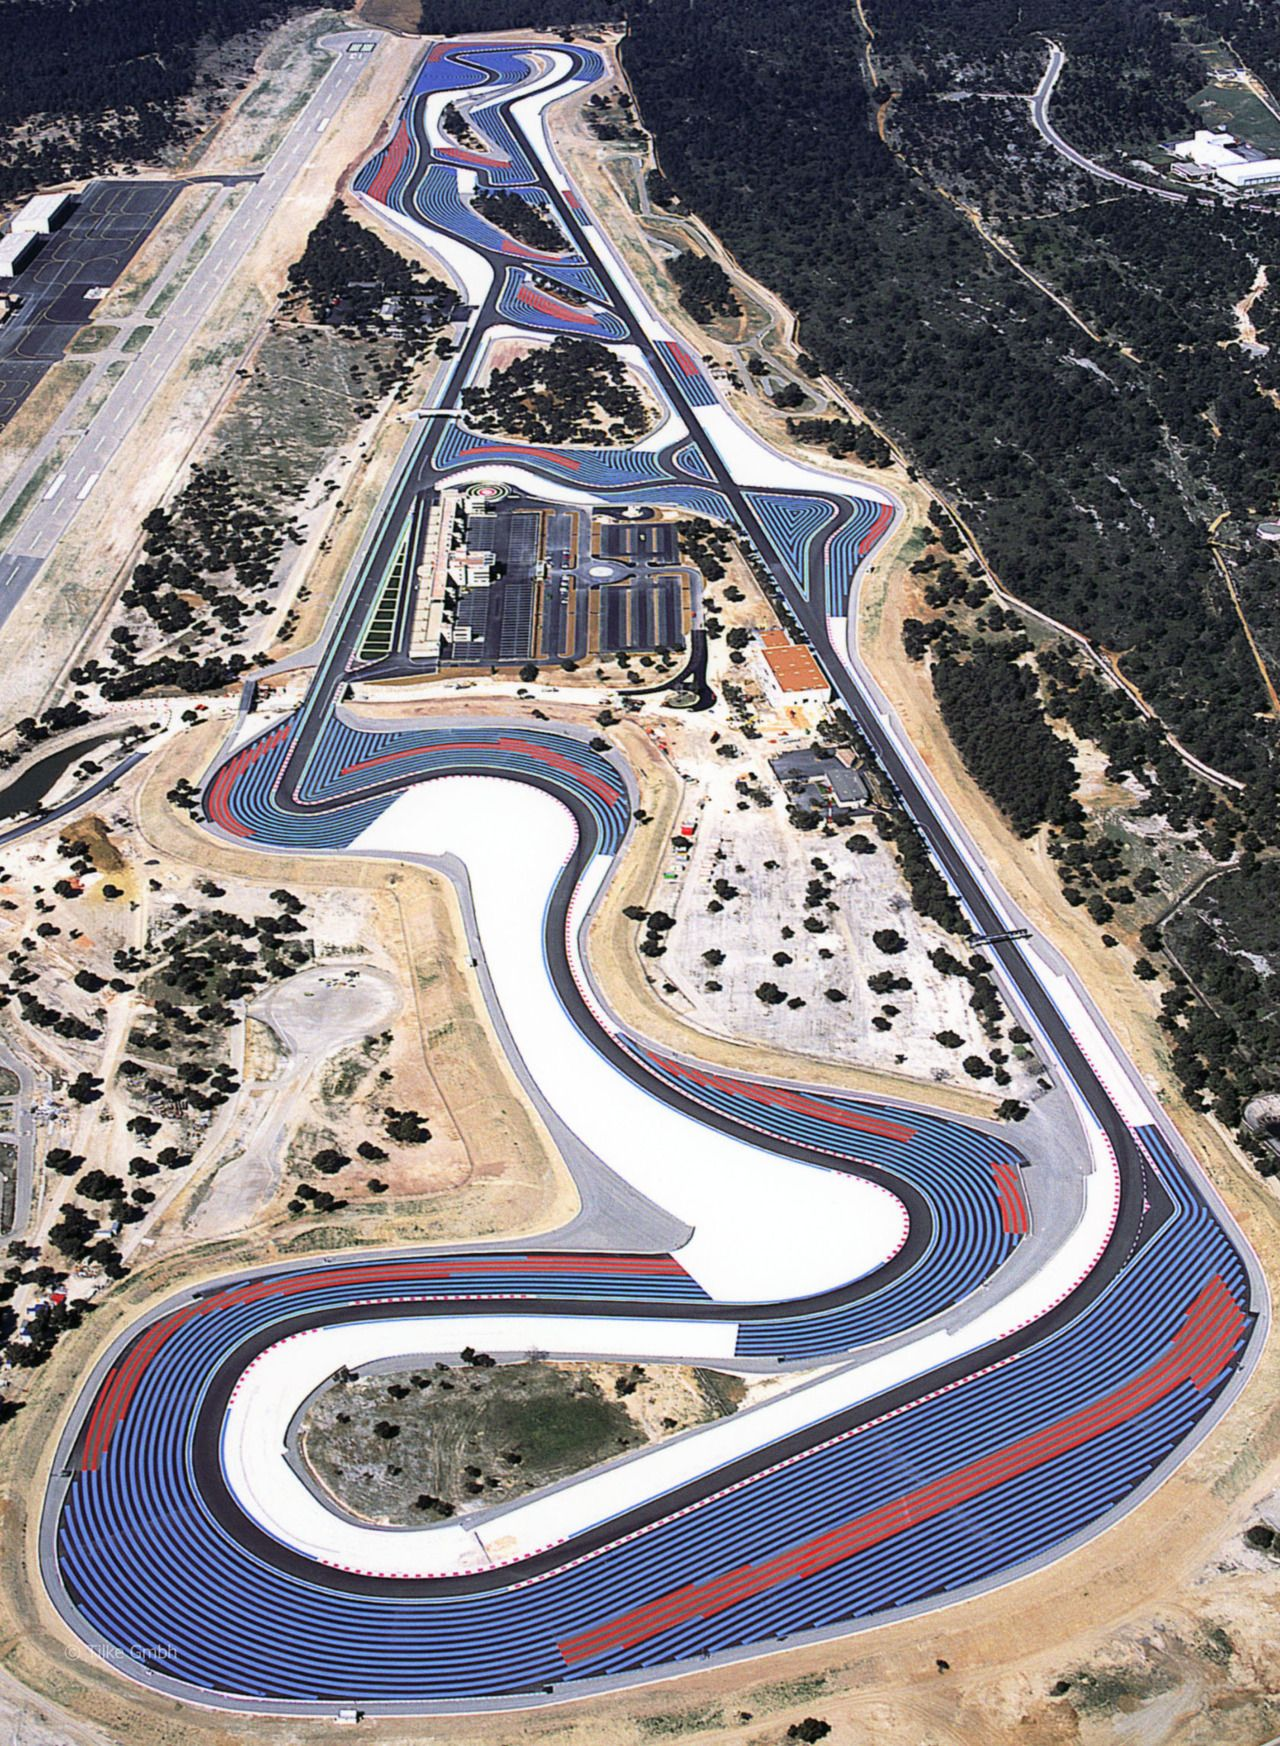 sharonov circuit paul ricard f1 pinterest. Black Bedroom Furniture Sets. Home Design Ideas